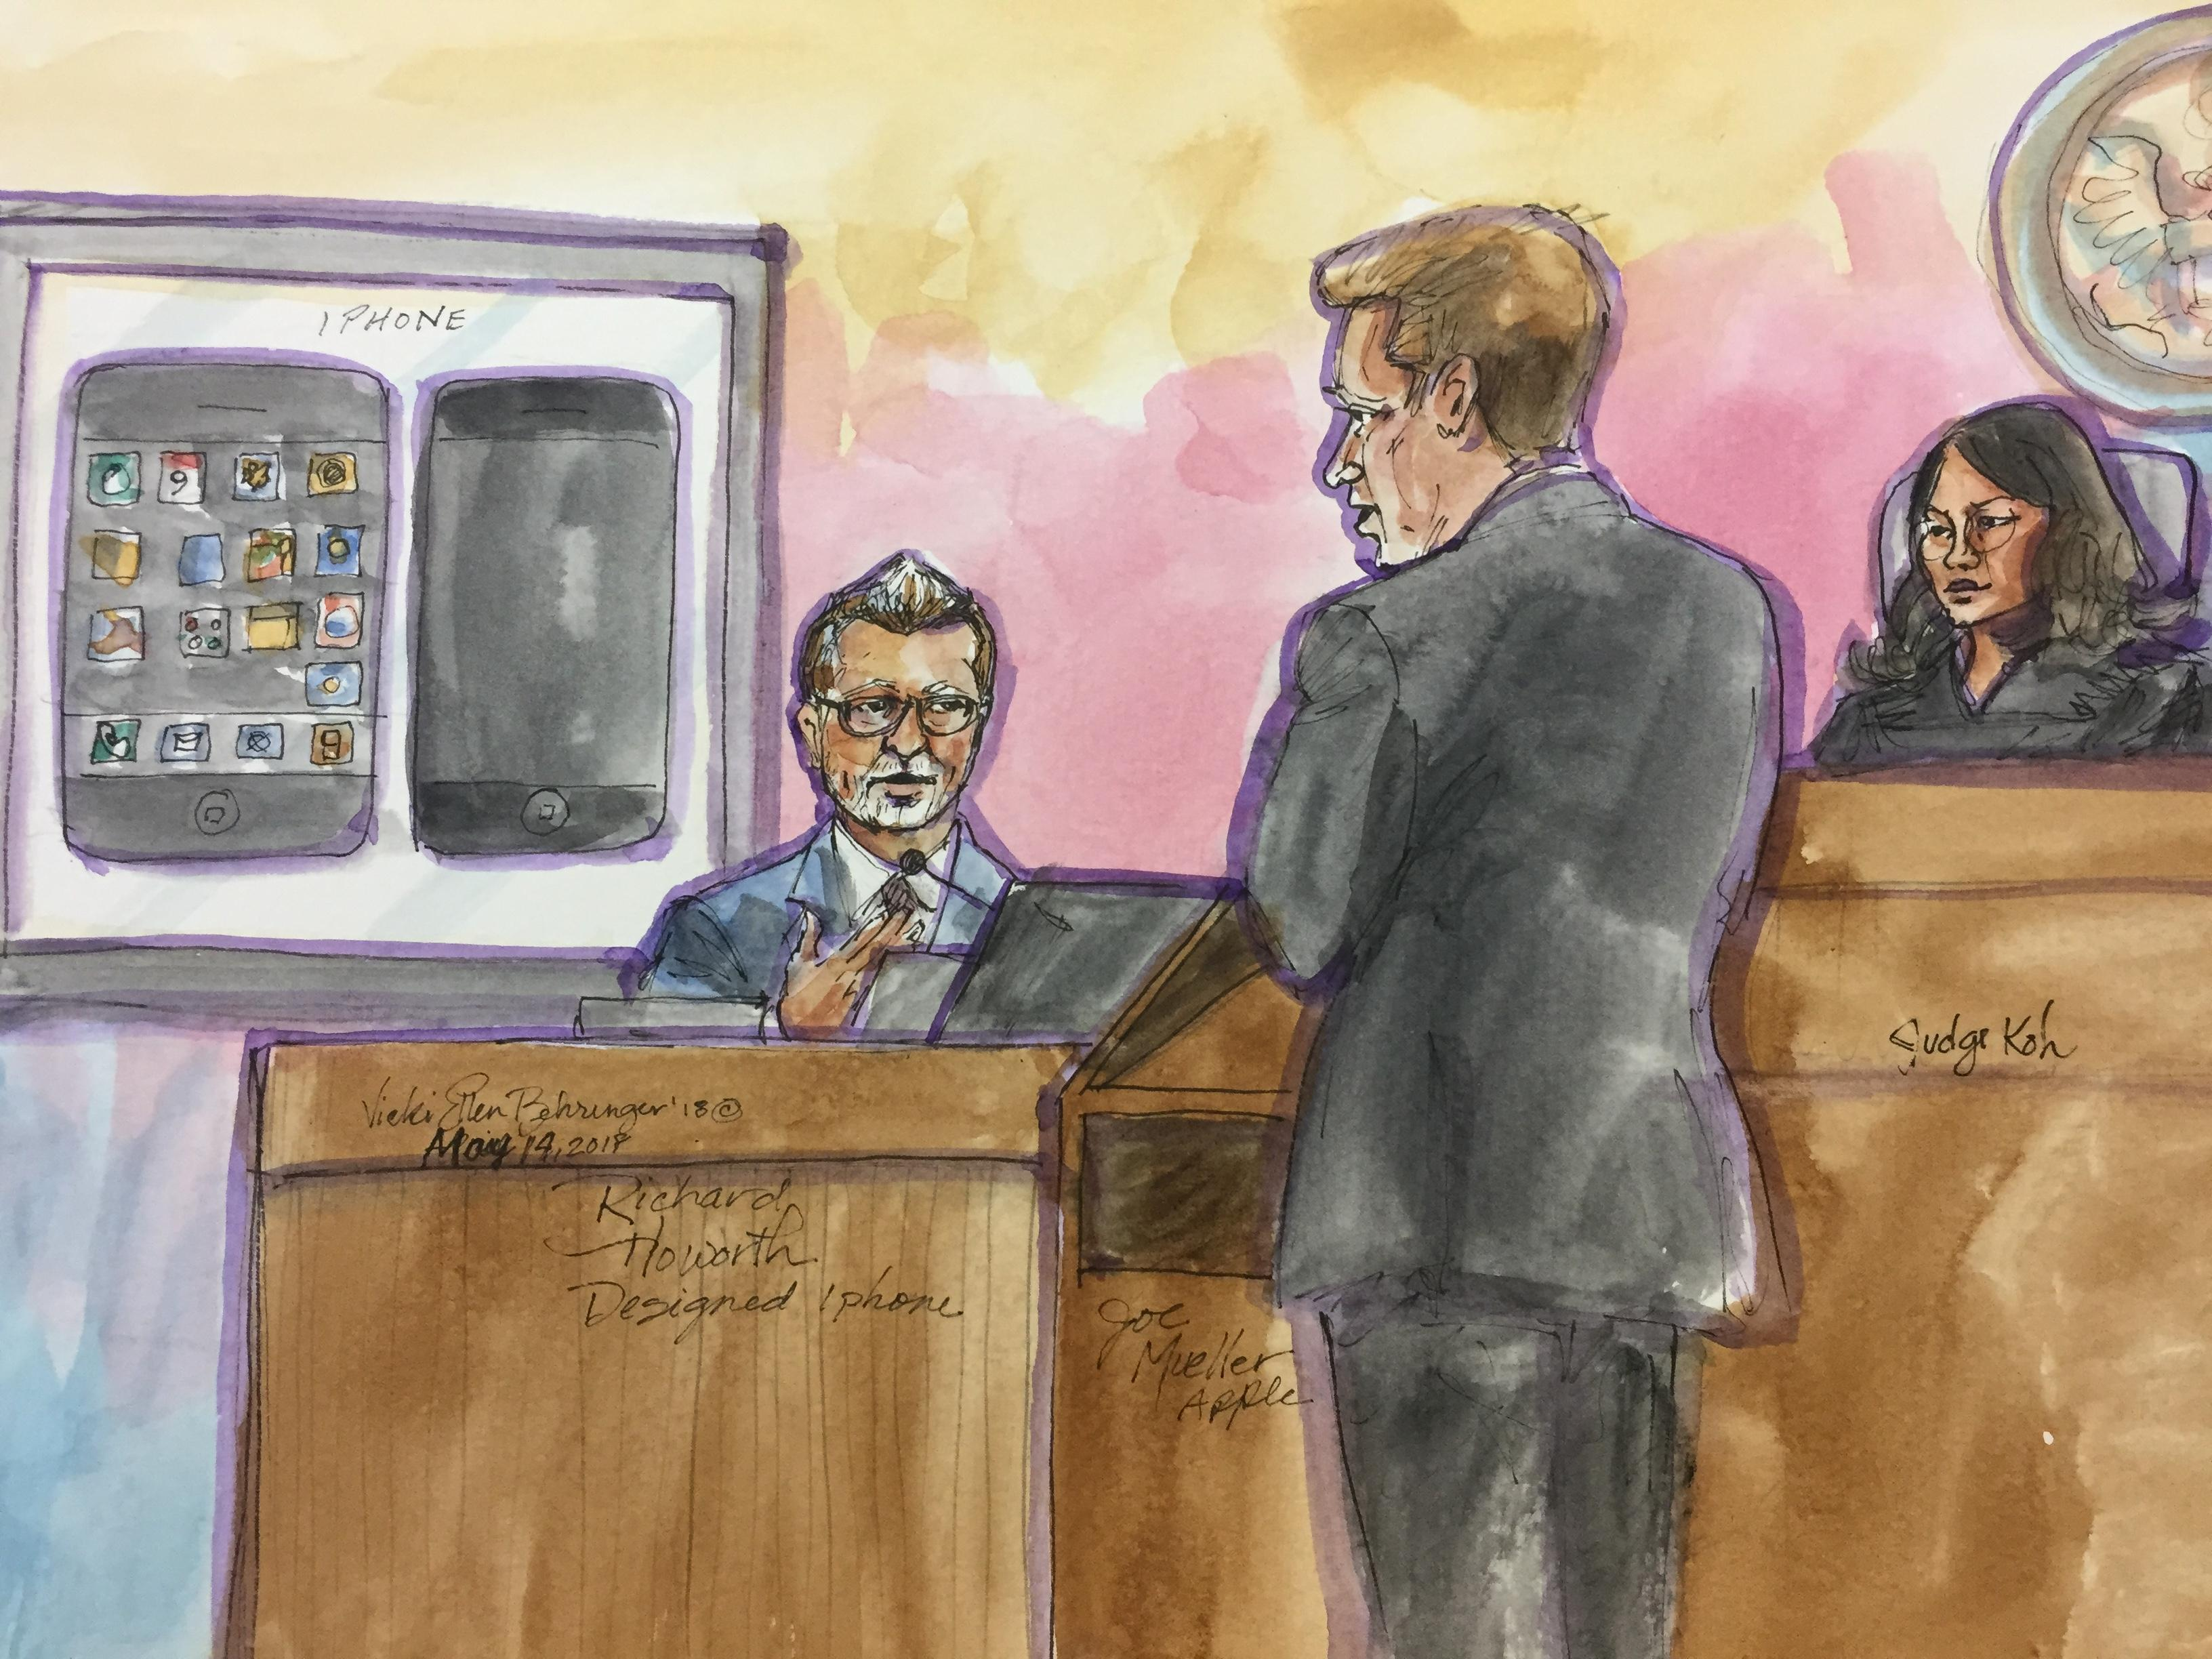 Richard Howarth, a senior director of Apple's design team, testifies about Apple iPhone patents, examined by Apple attorney Joe Mueller as US District Judge Lucy Koh looks on.